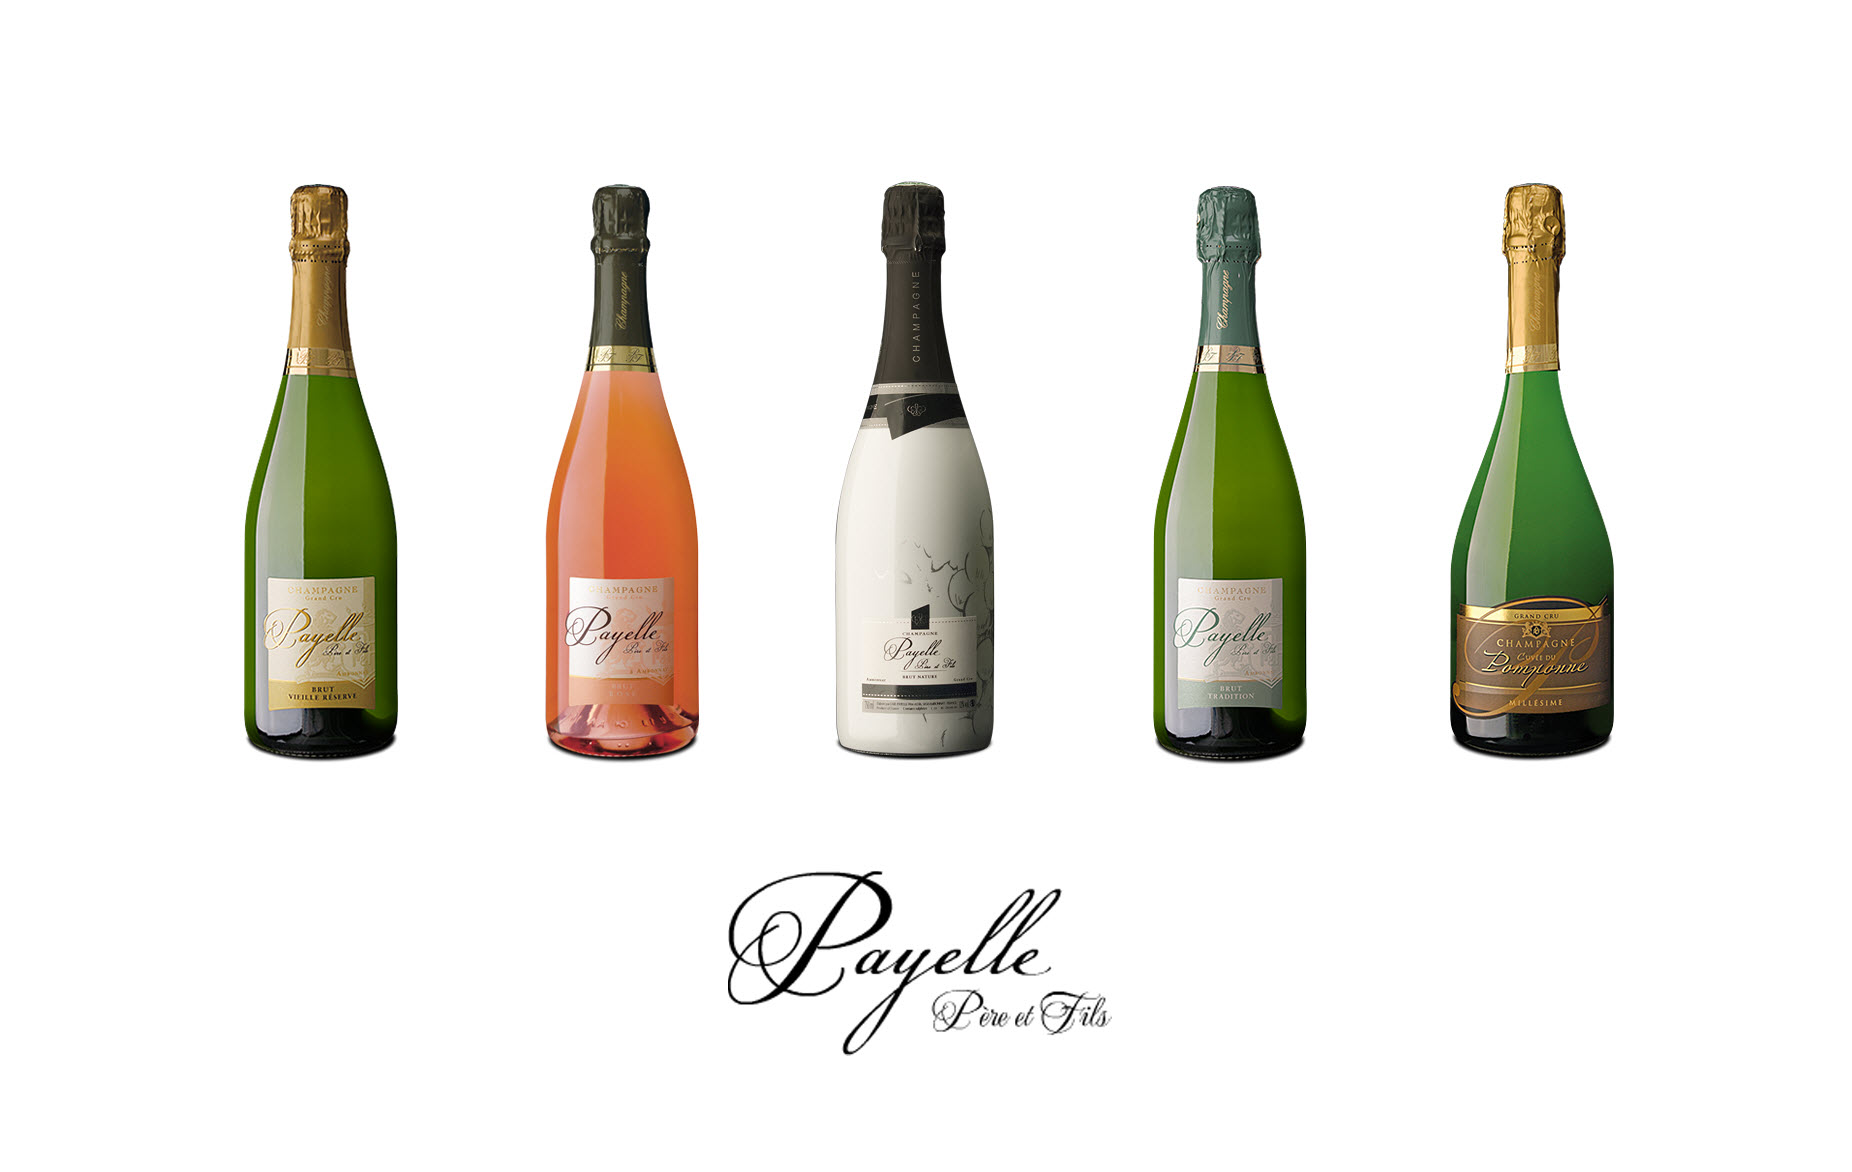 Champagne Payelle Pere et Fils